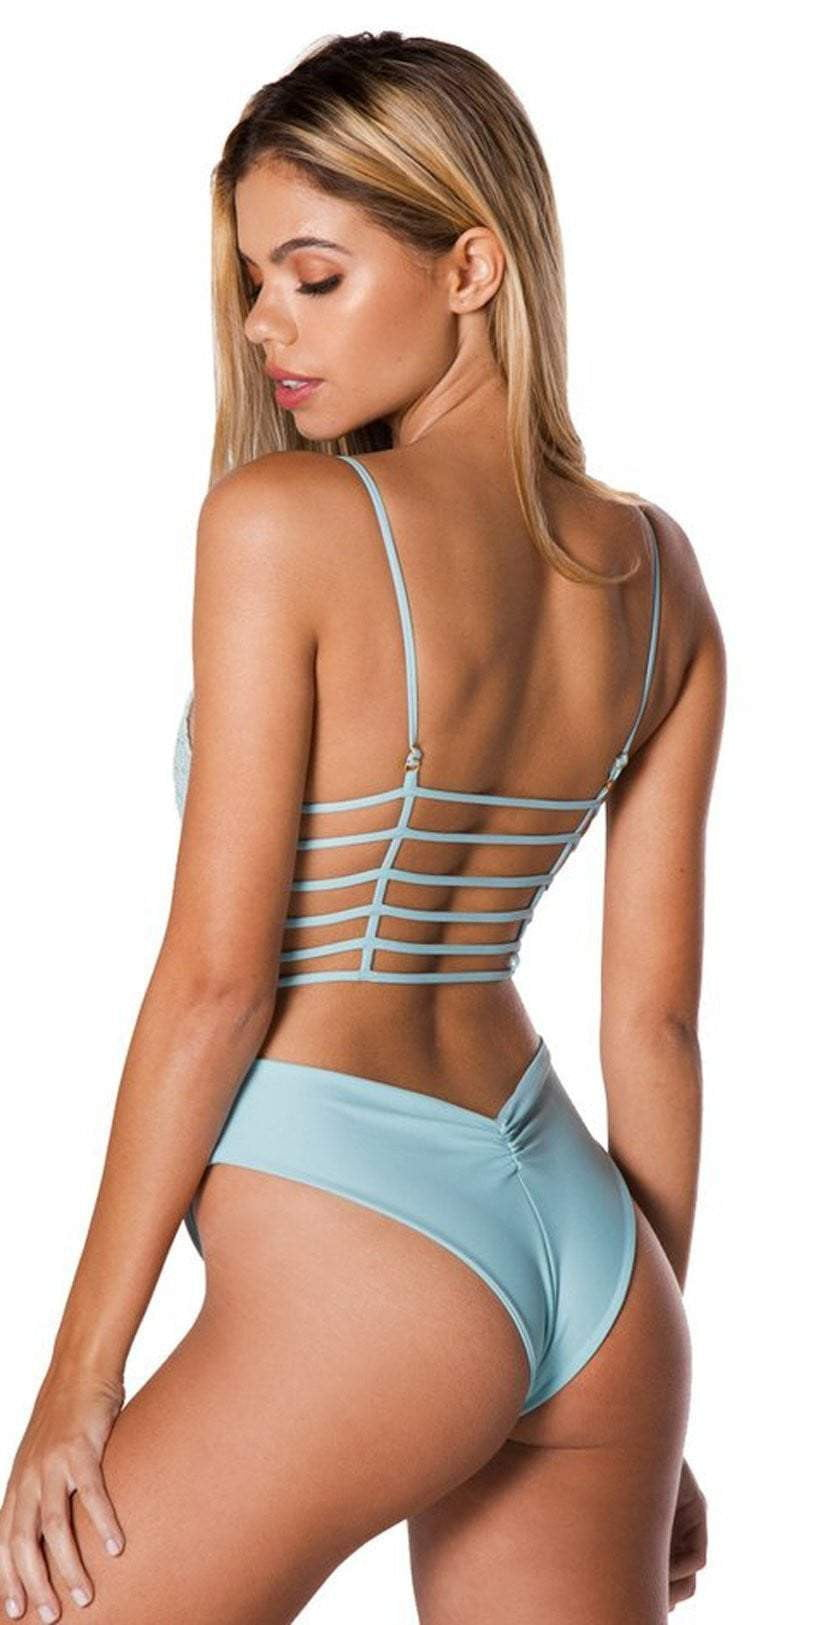 Montce Crochet Caged One Piece in Aqua Marine: